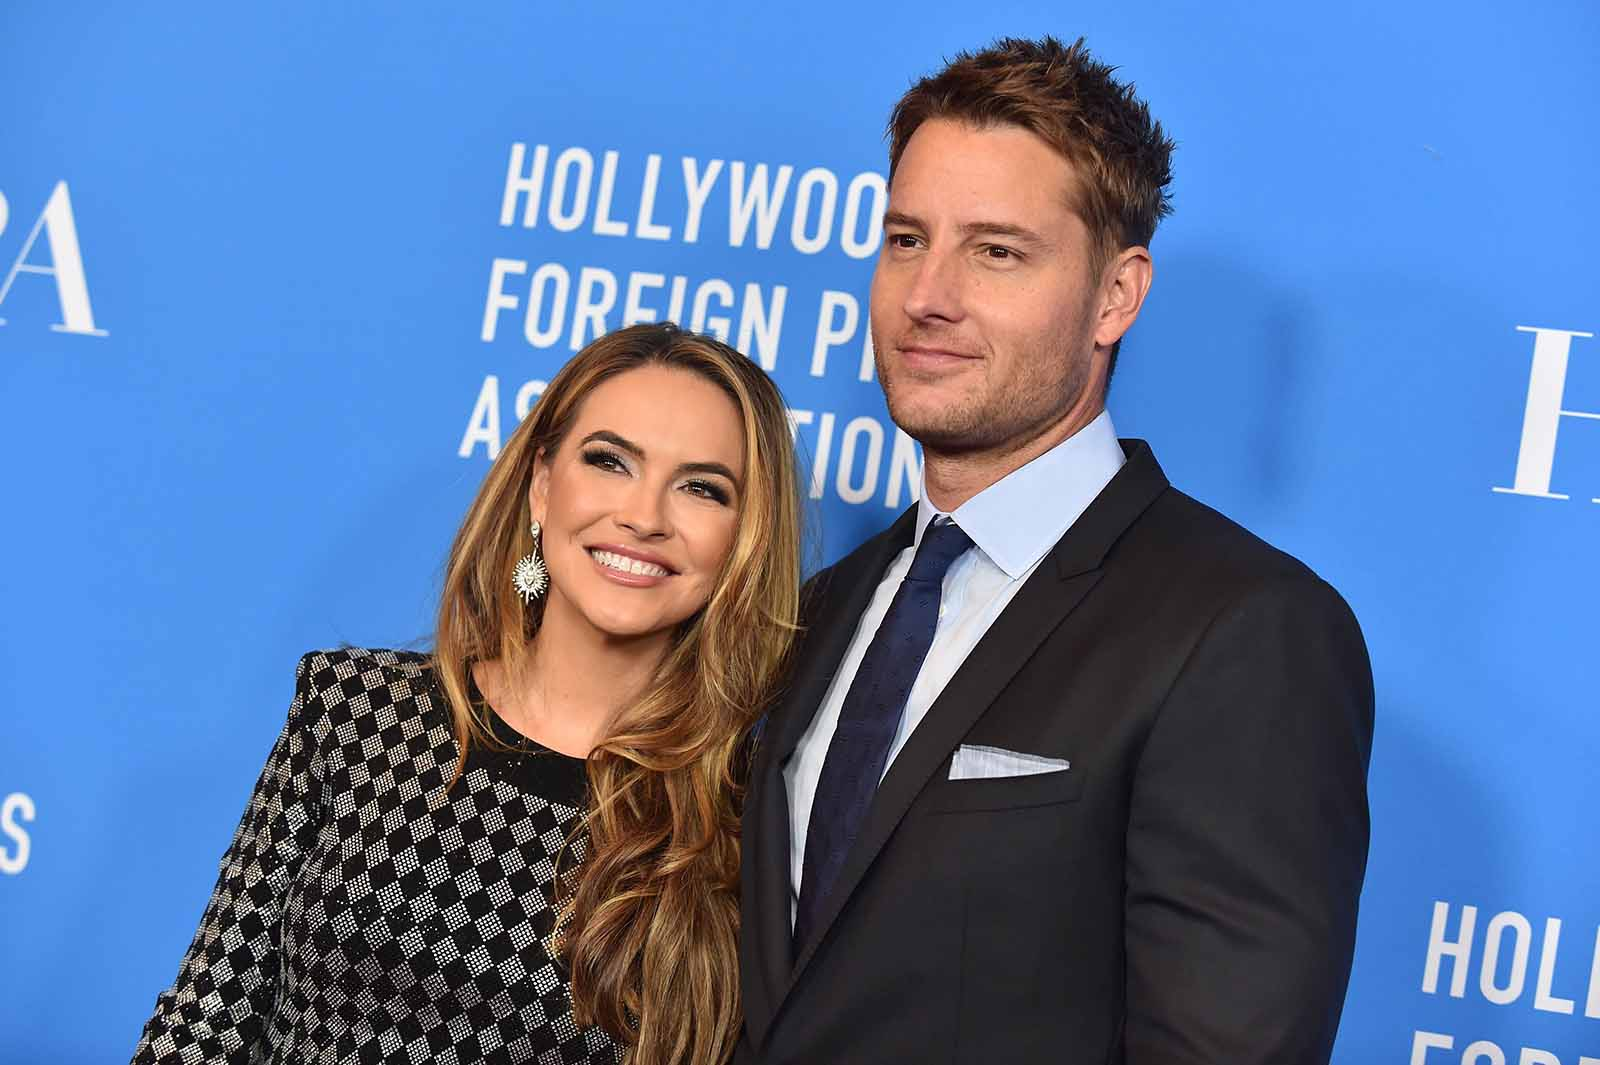 With the recent news of her 'DWTS' partner's divorce, many are wondering if Chrishell Stause cheated on Justin Hartley. Learn more about the rumors.